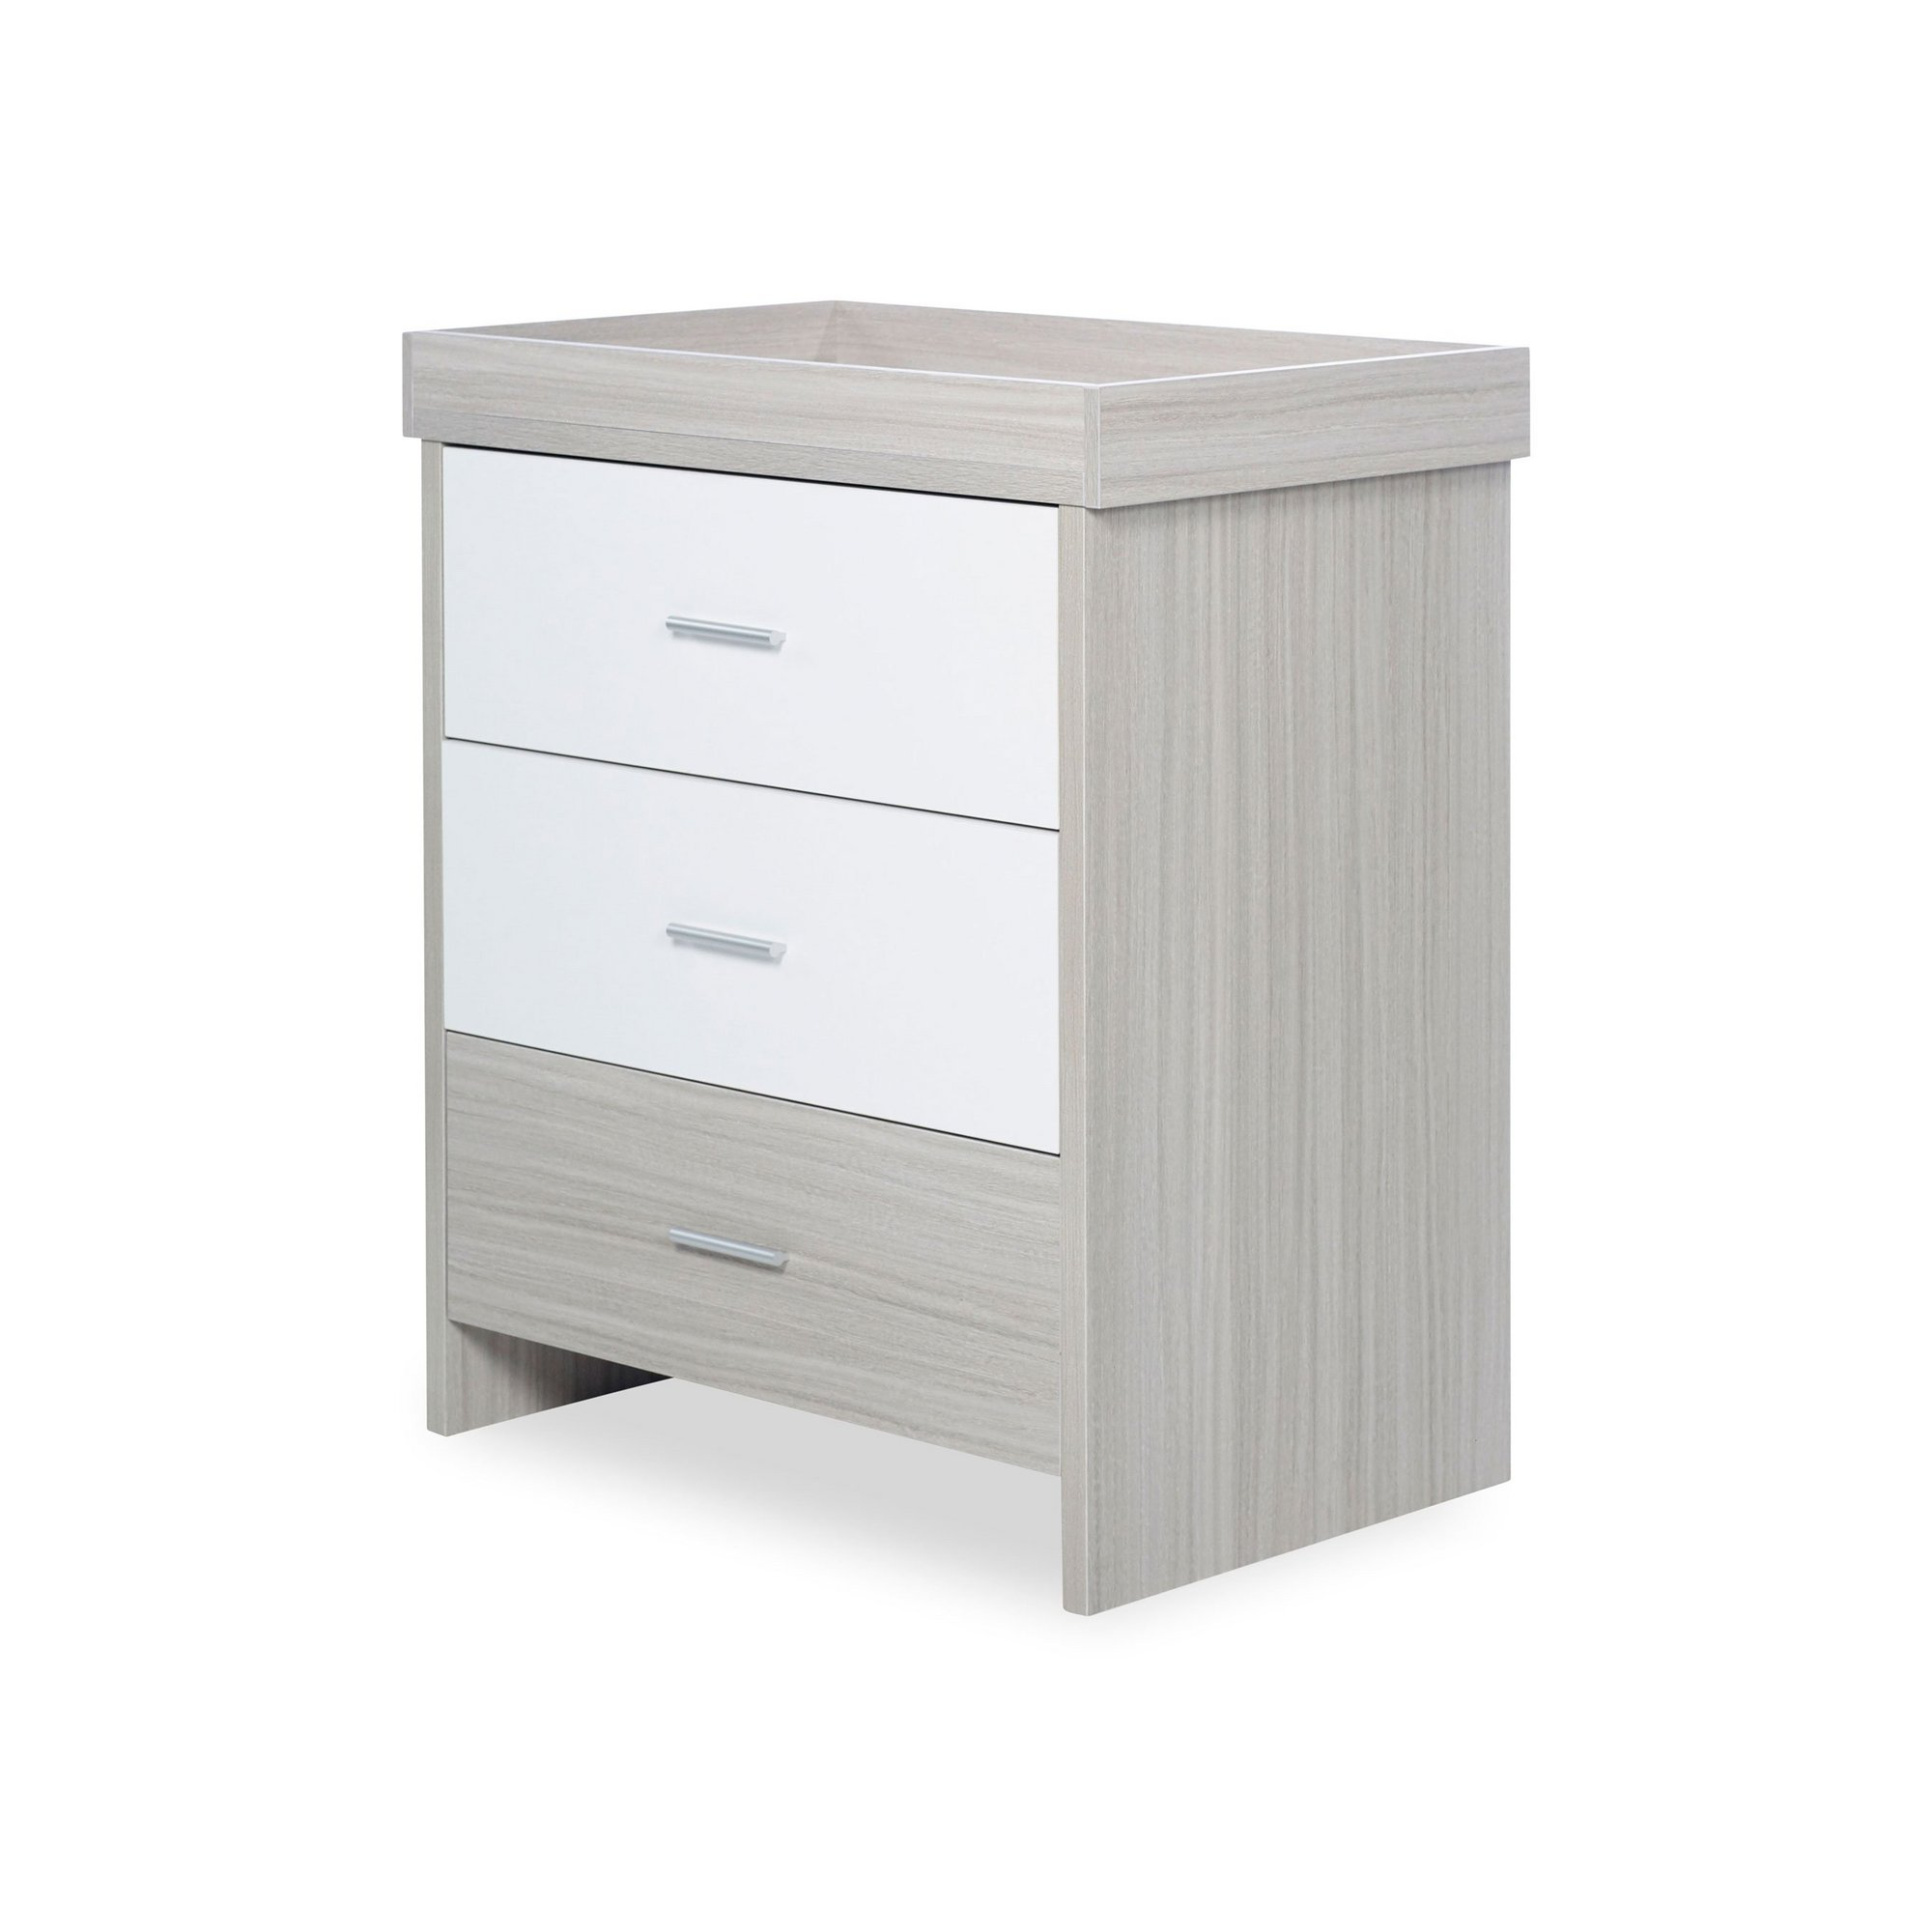 Image of Ickle Bubba Ash Grey and White Trend Pembrey Changing Unit / Chest